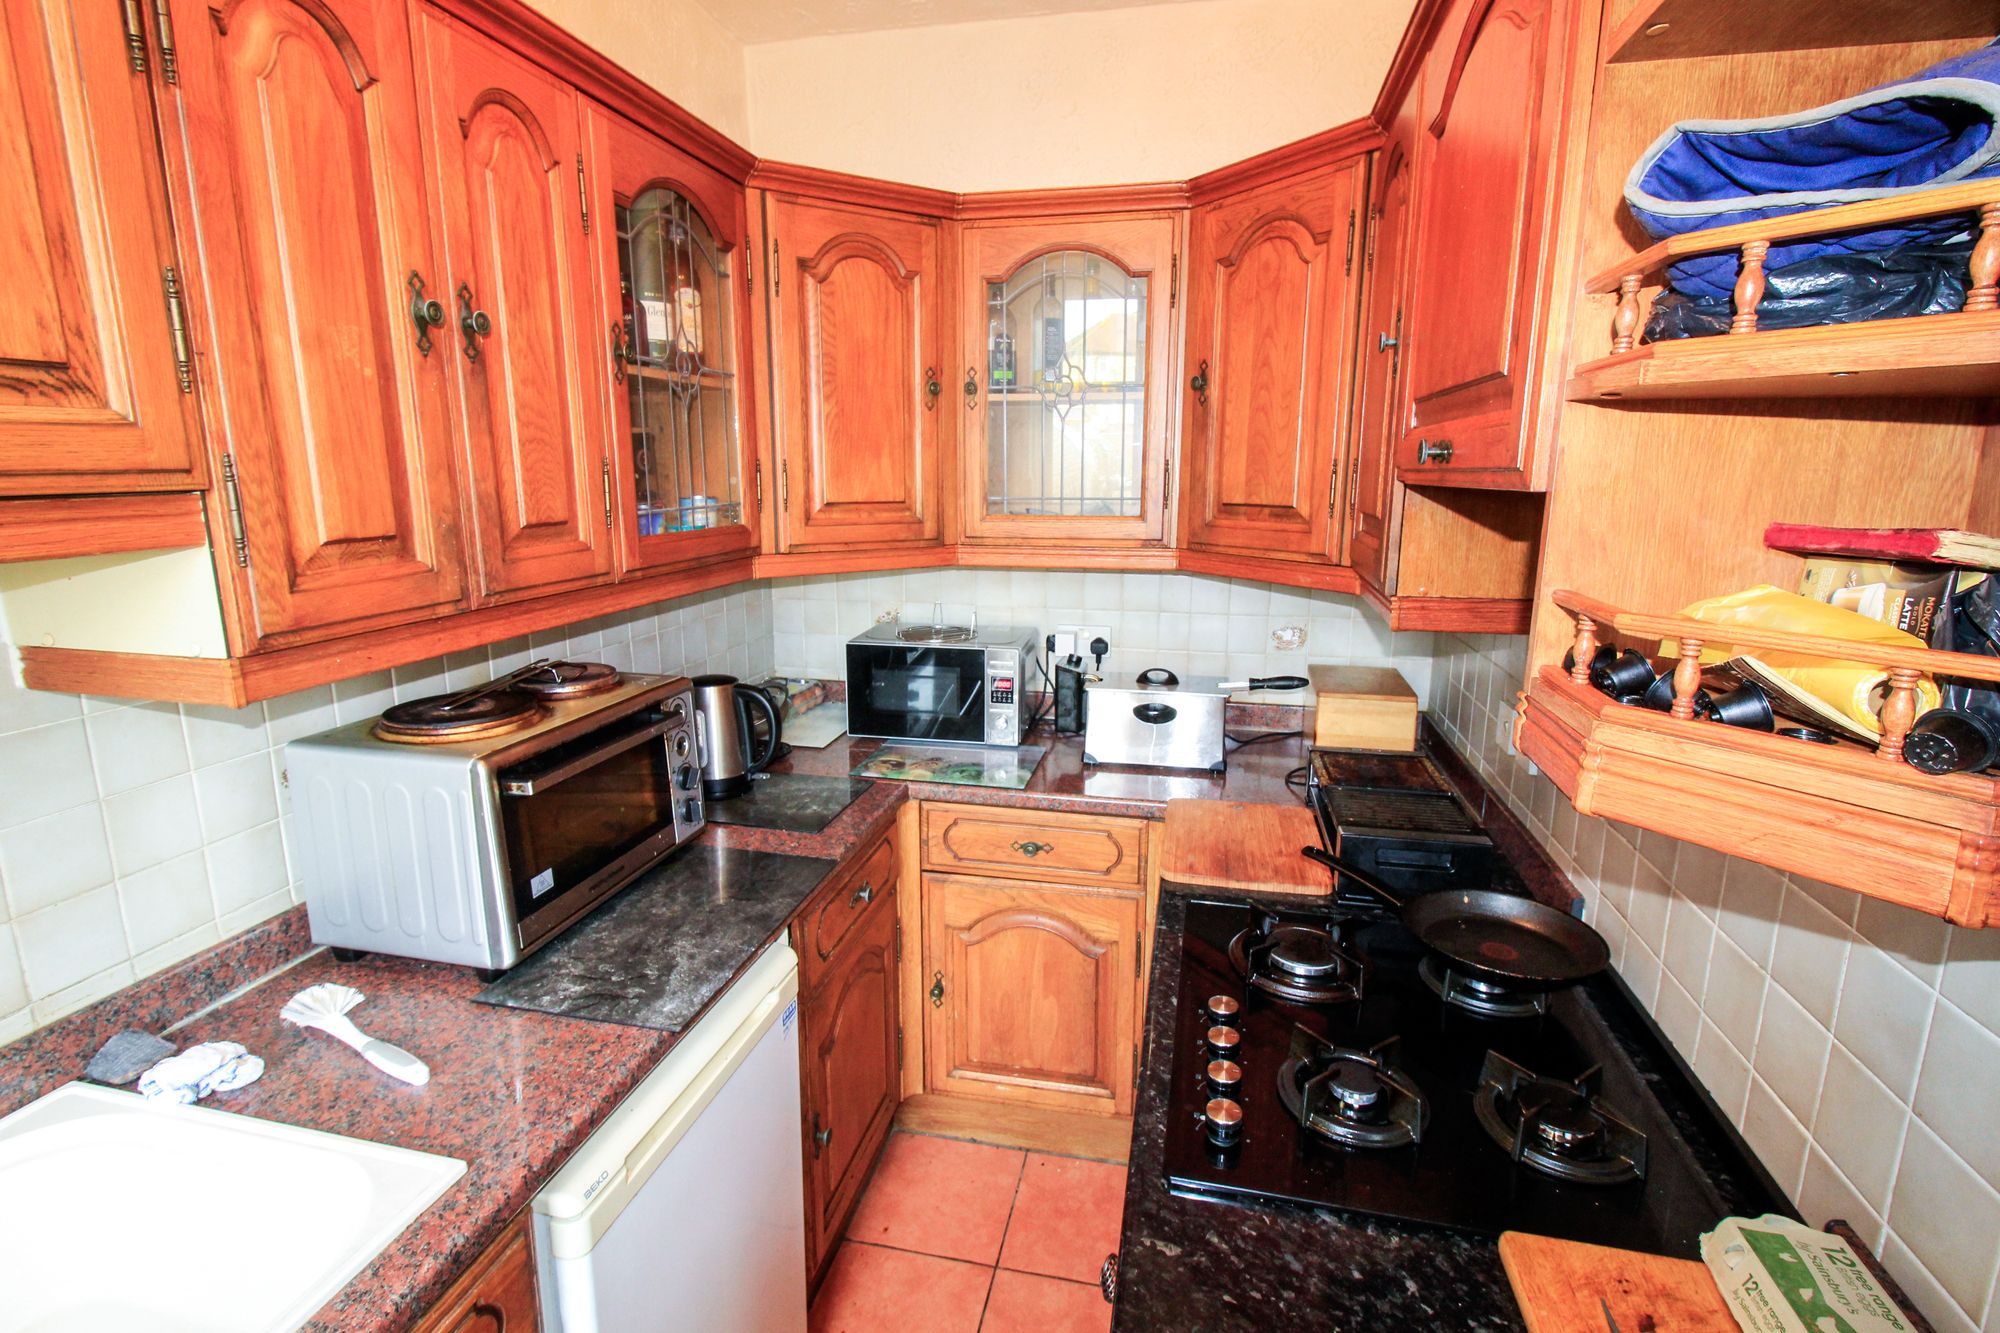 3 bedroom semi-detached house Sale Agreed in Huddersfield - Kitchen